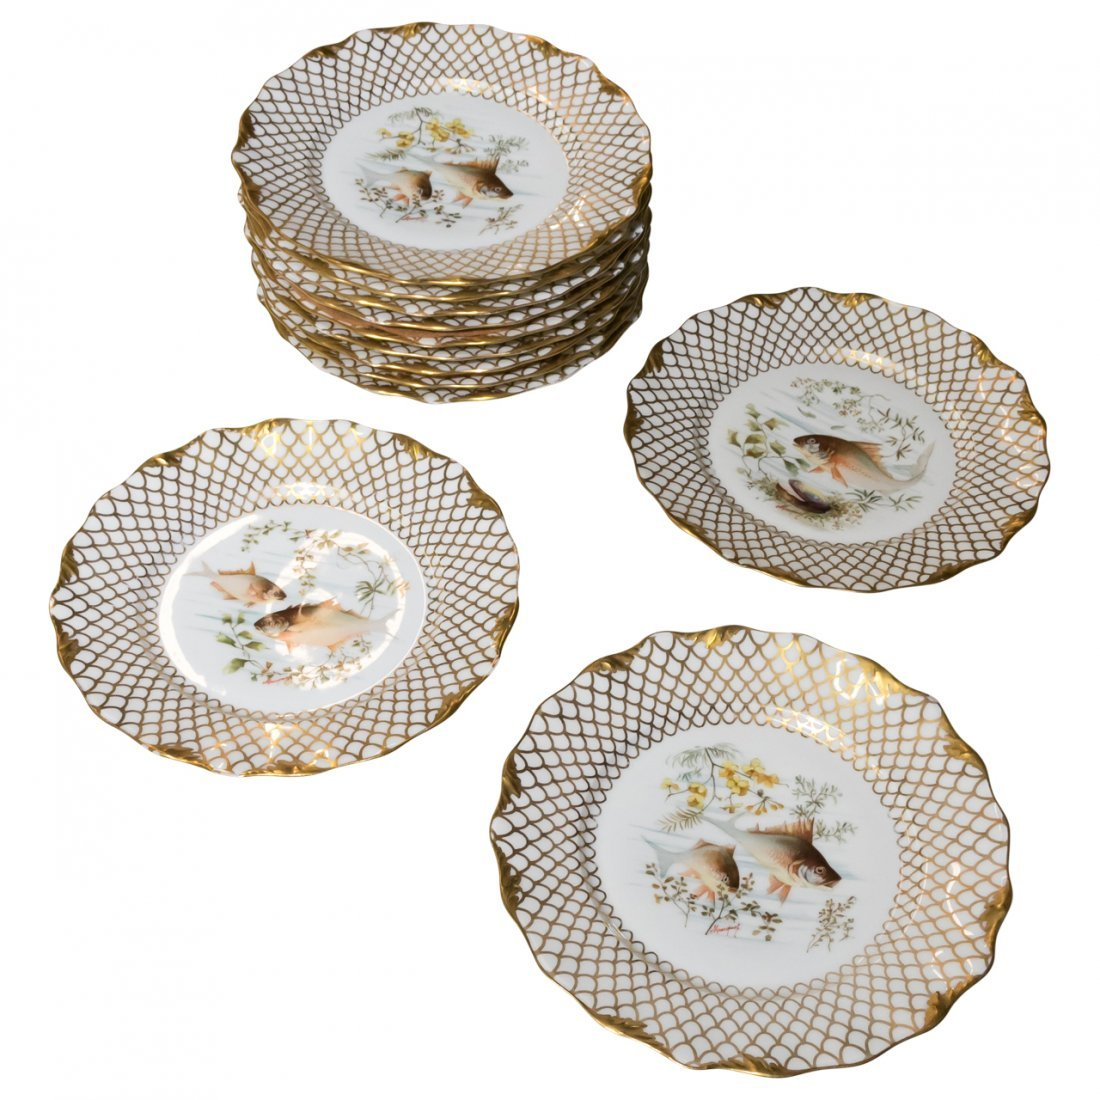 Set of 12 Limoges Fish Plates Signed Marduck